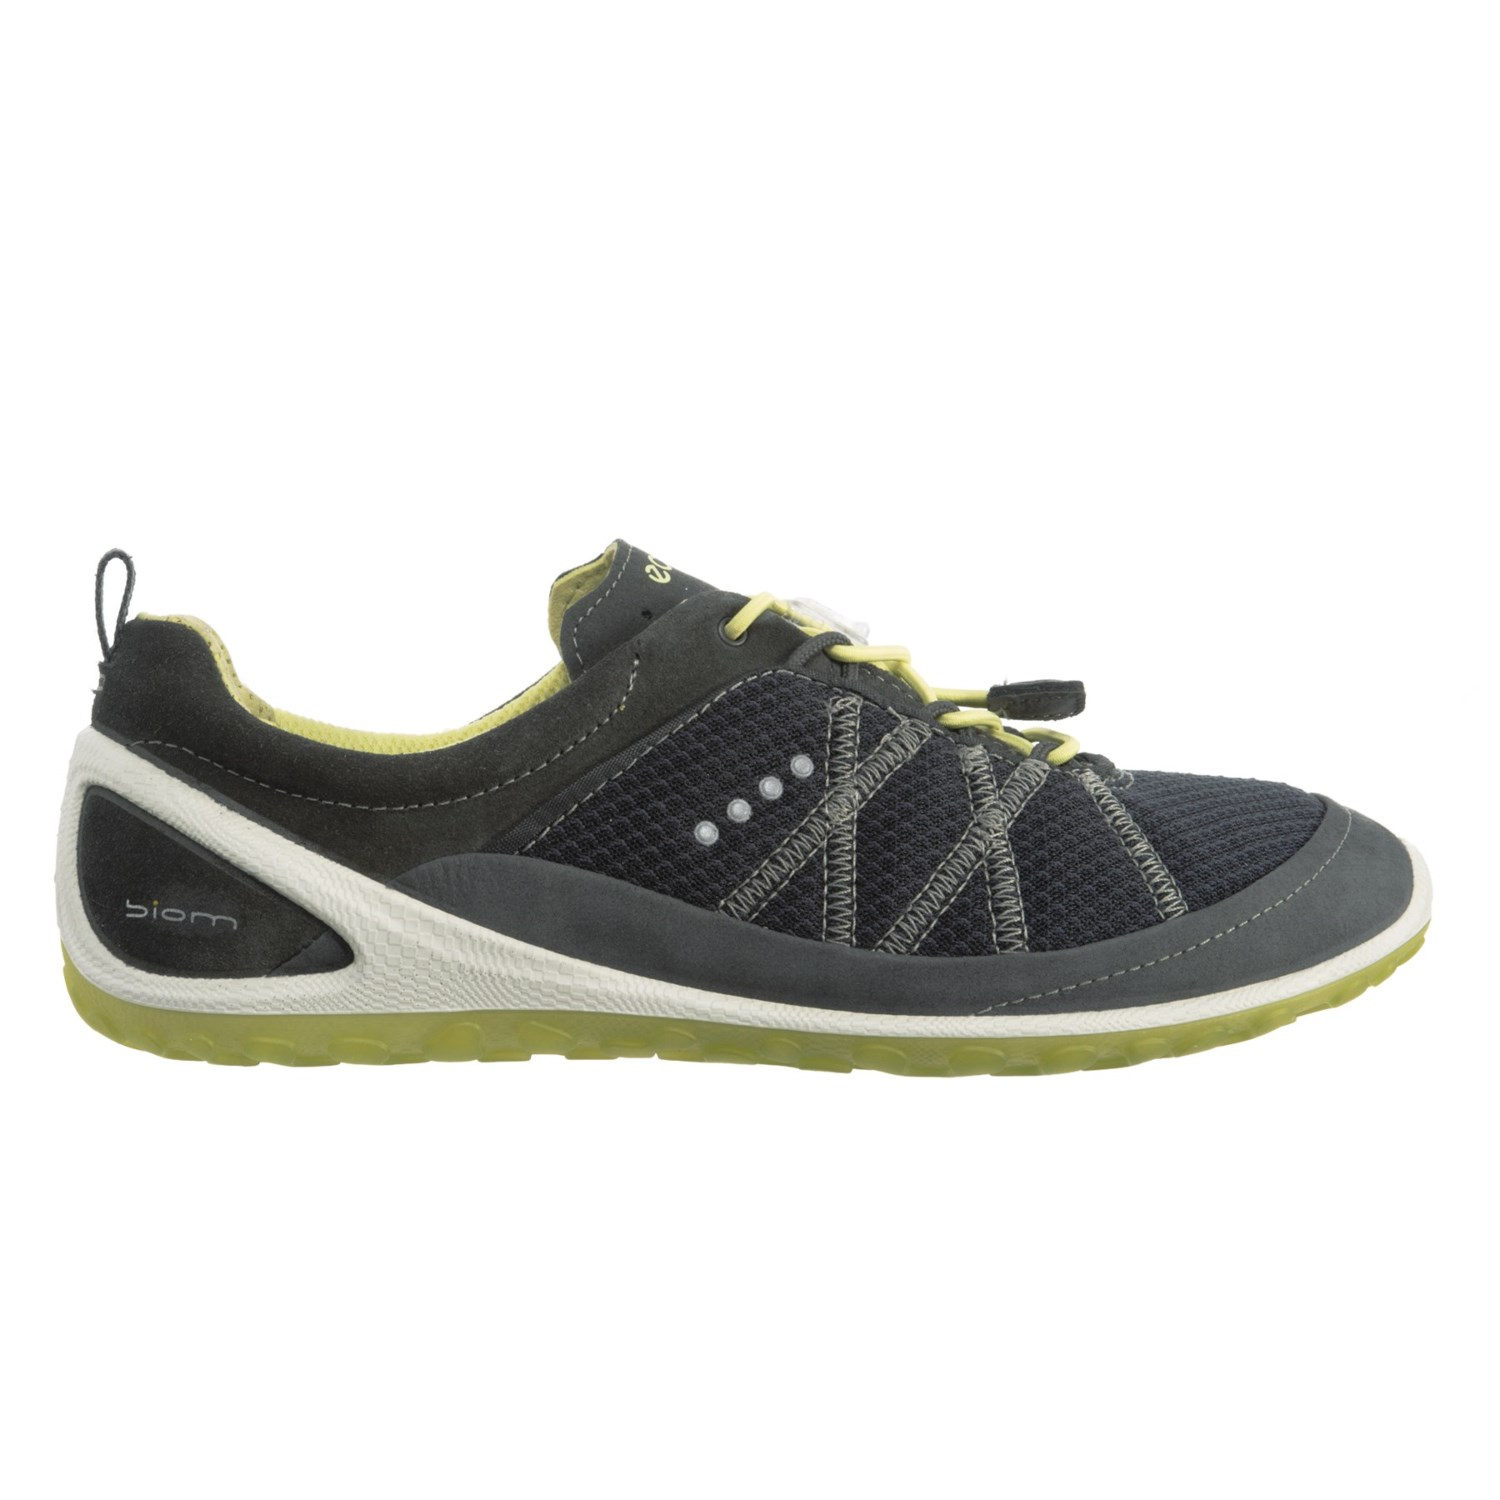 66b280a426f ECCO BIOM Lite Toggle Sneakers (For Women) - Save 61%